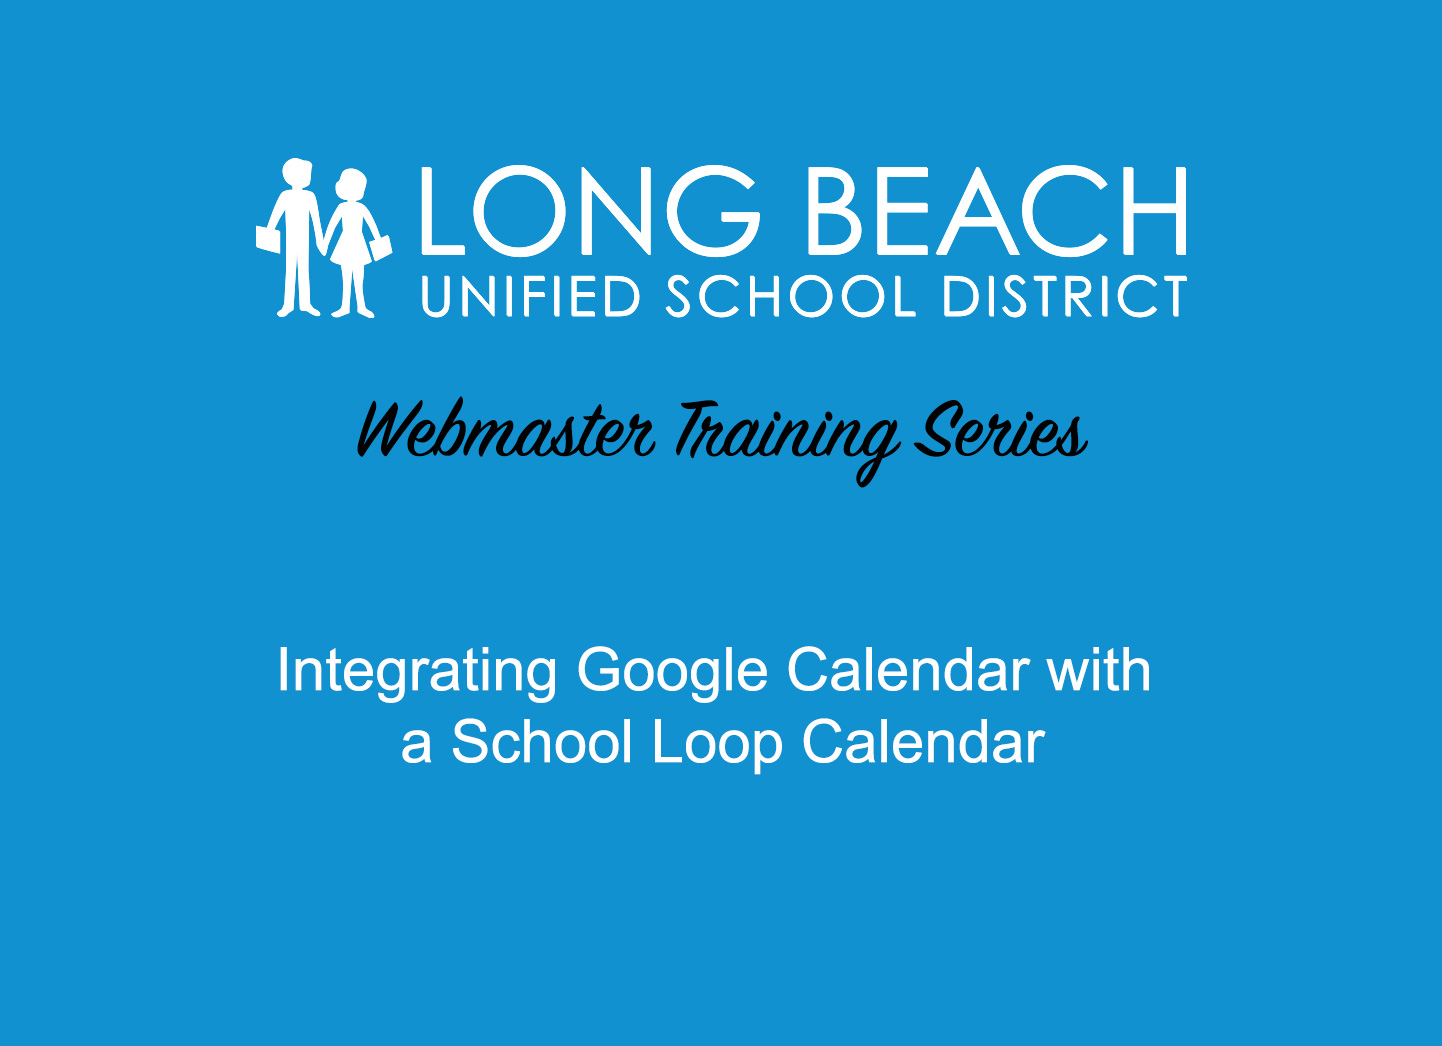 SLS2 - Integrating Google Calendar with School Loop Calendar - Video